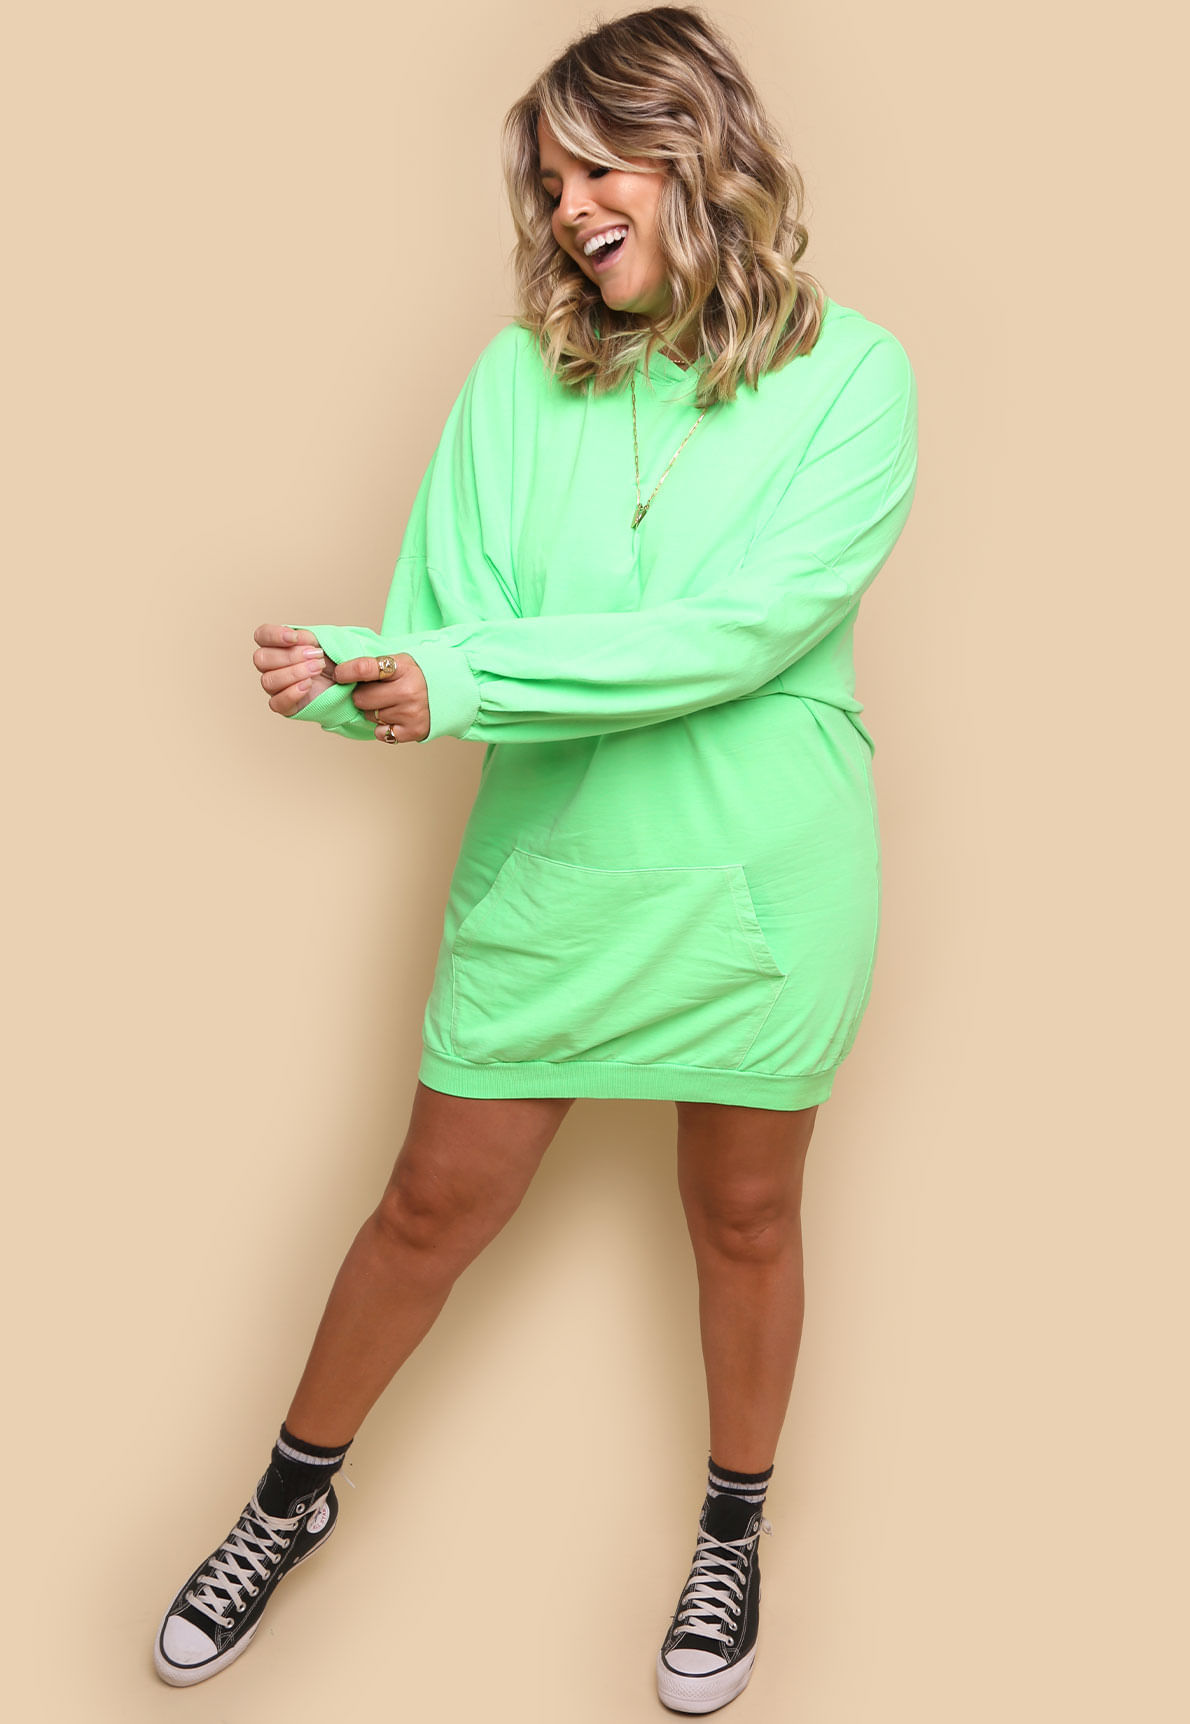 30442-moletom-oversized-neon-take-me-out-mundo-lolita-06